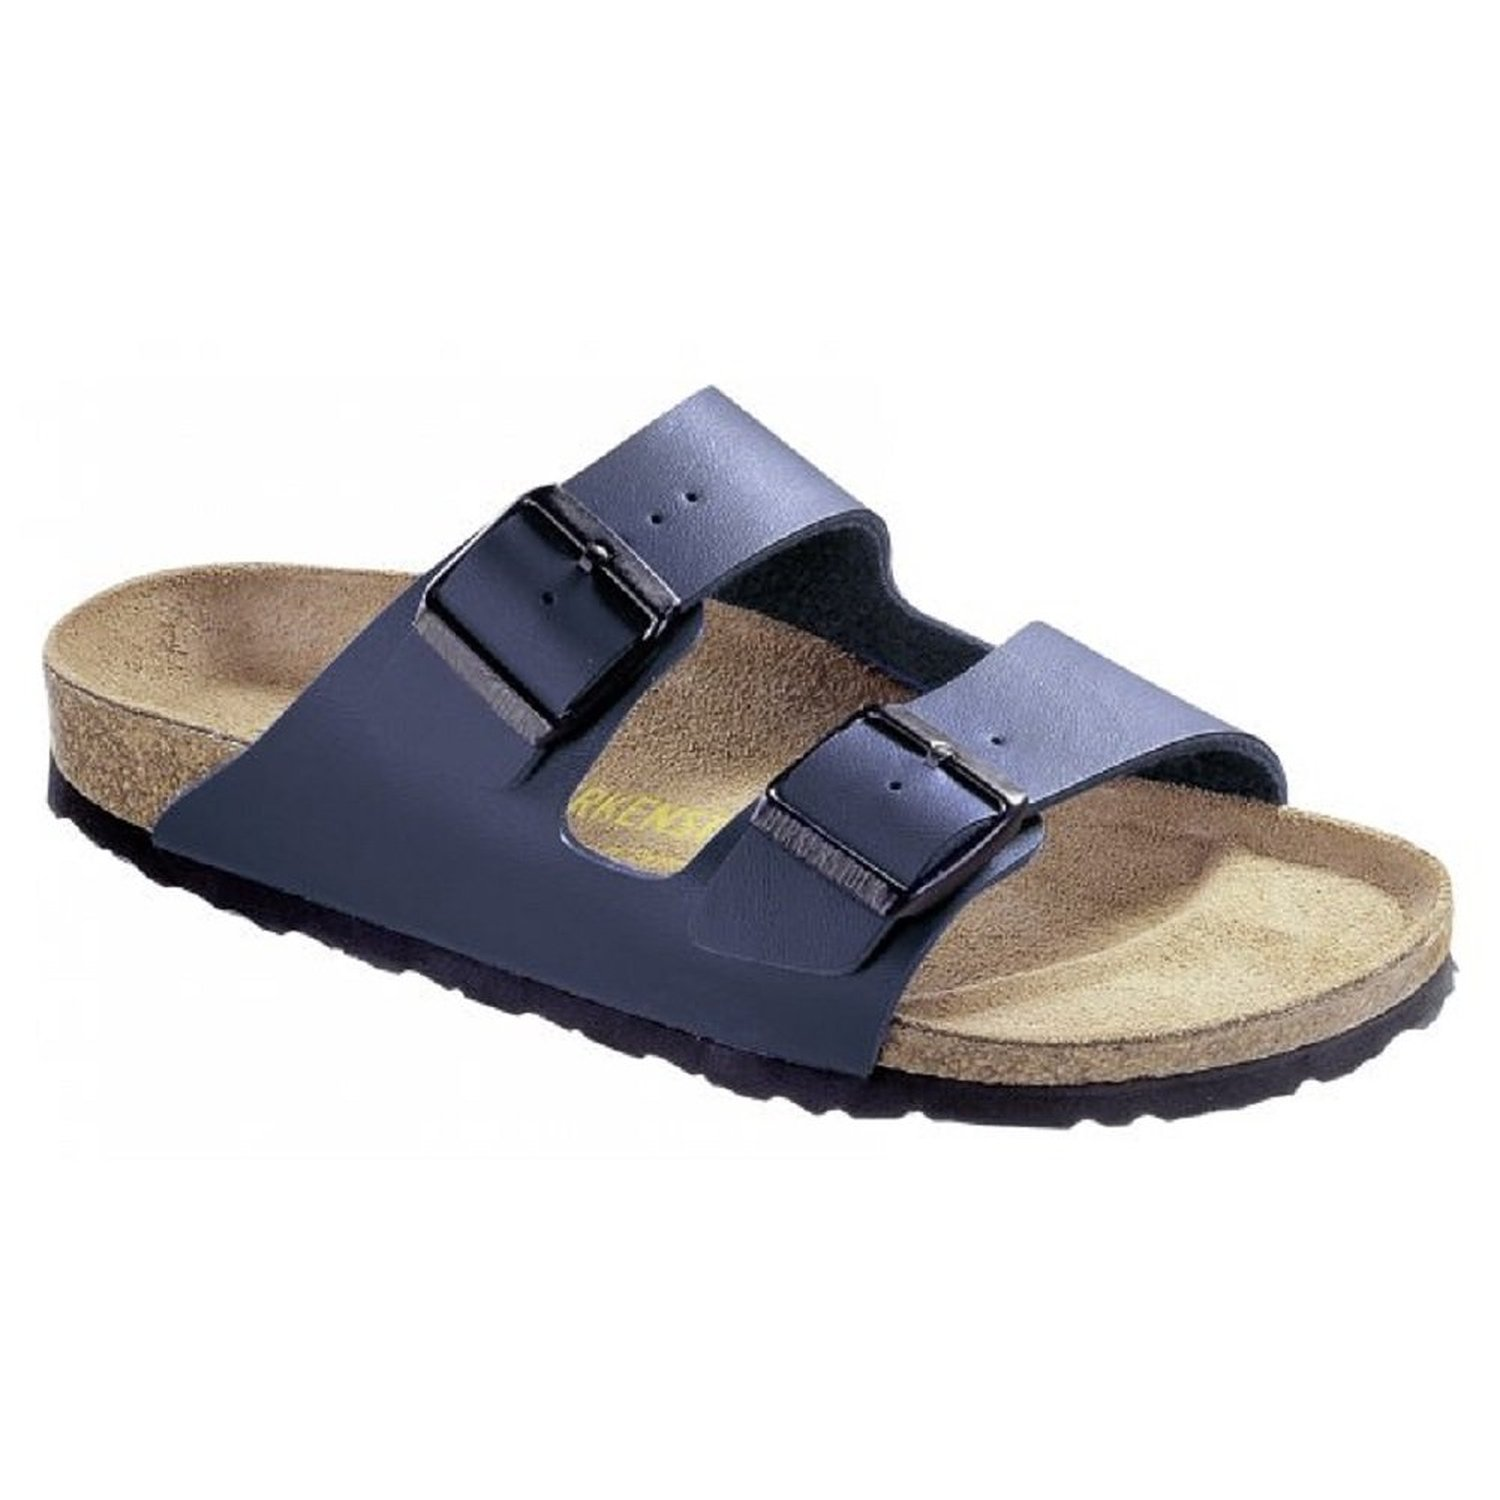 Birkenstock Women's Arizona 2-Strap Cork Footbed Sandal Blue 38 M EU